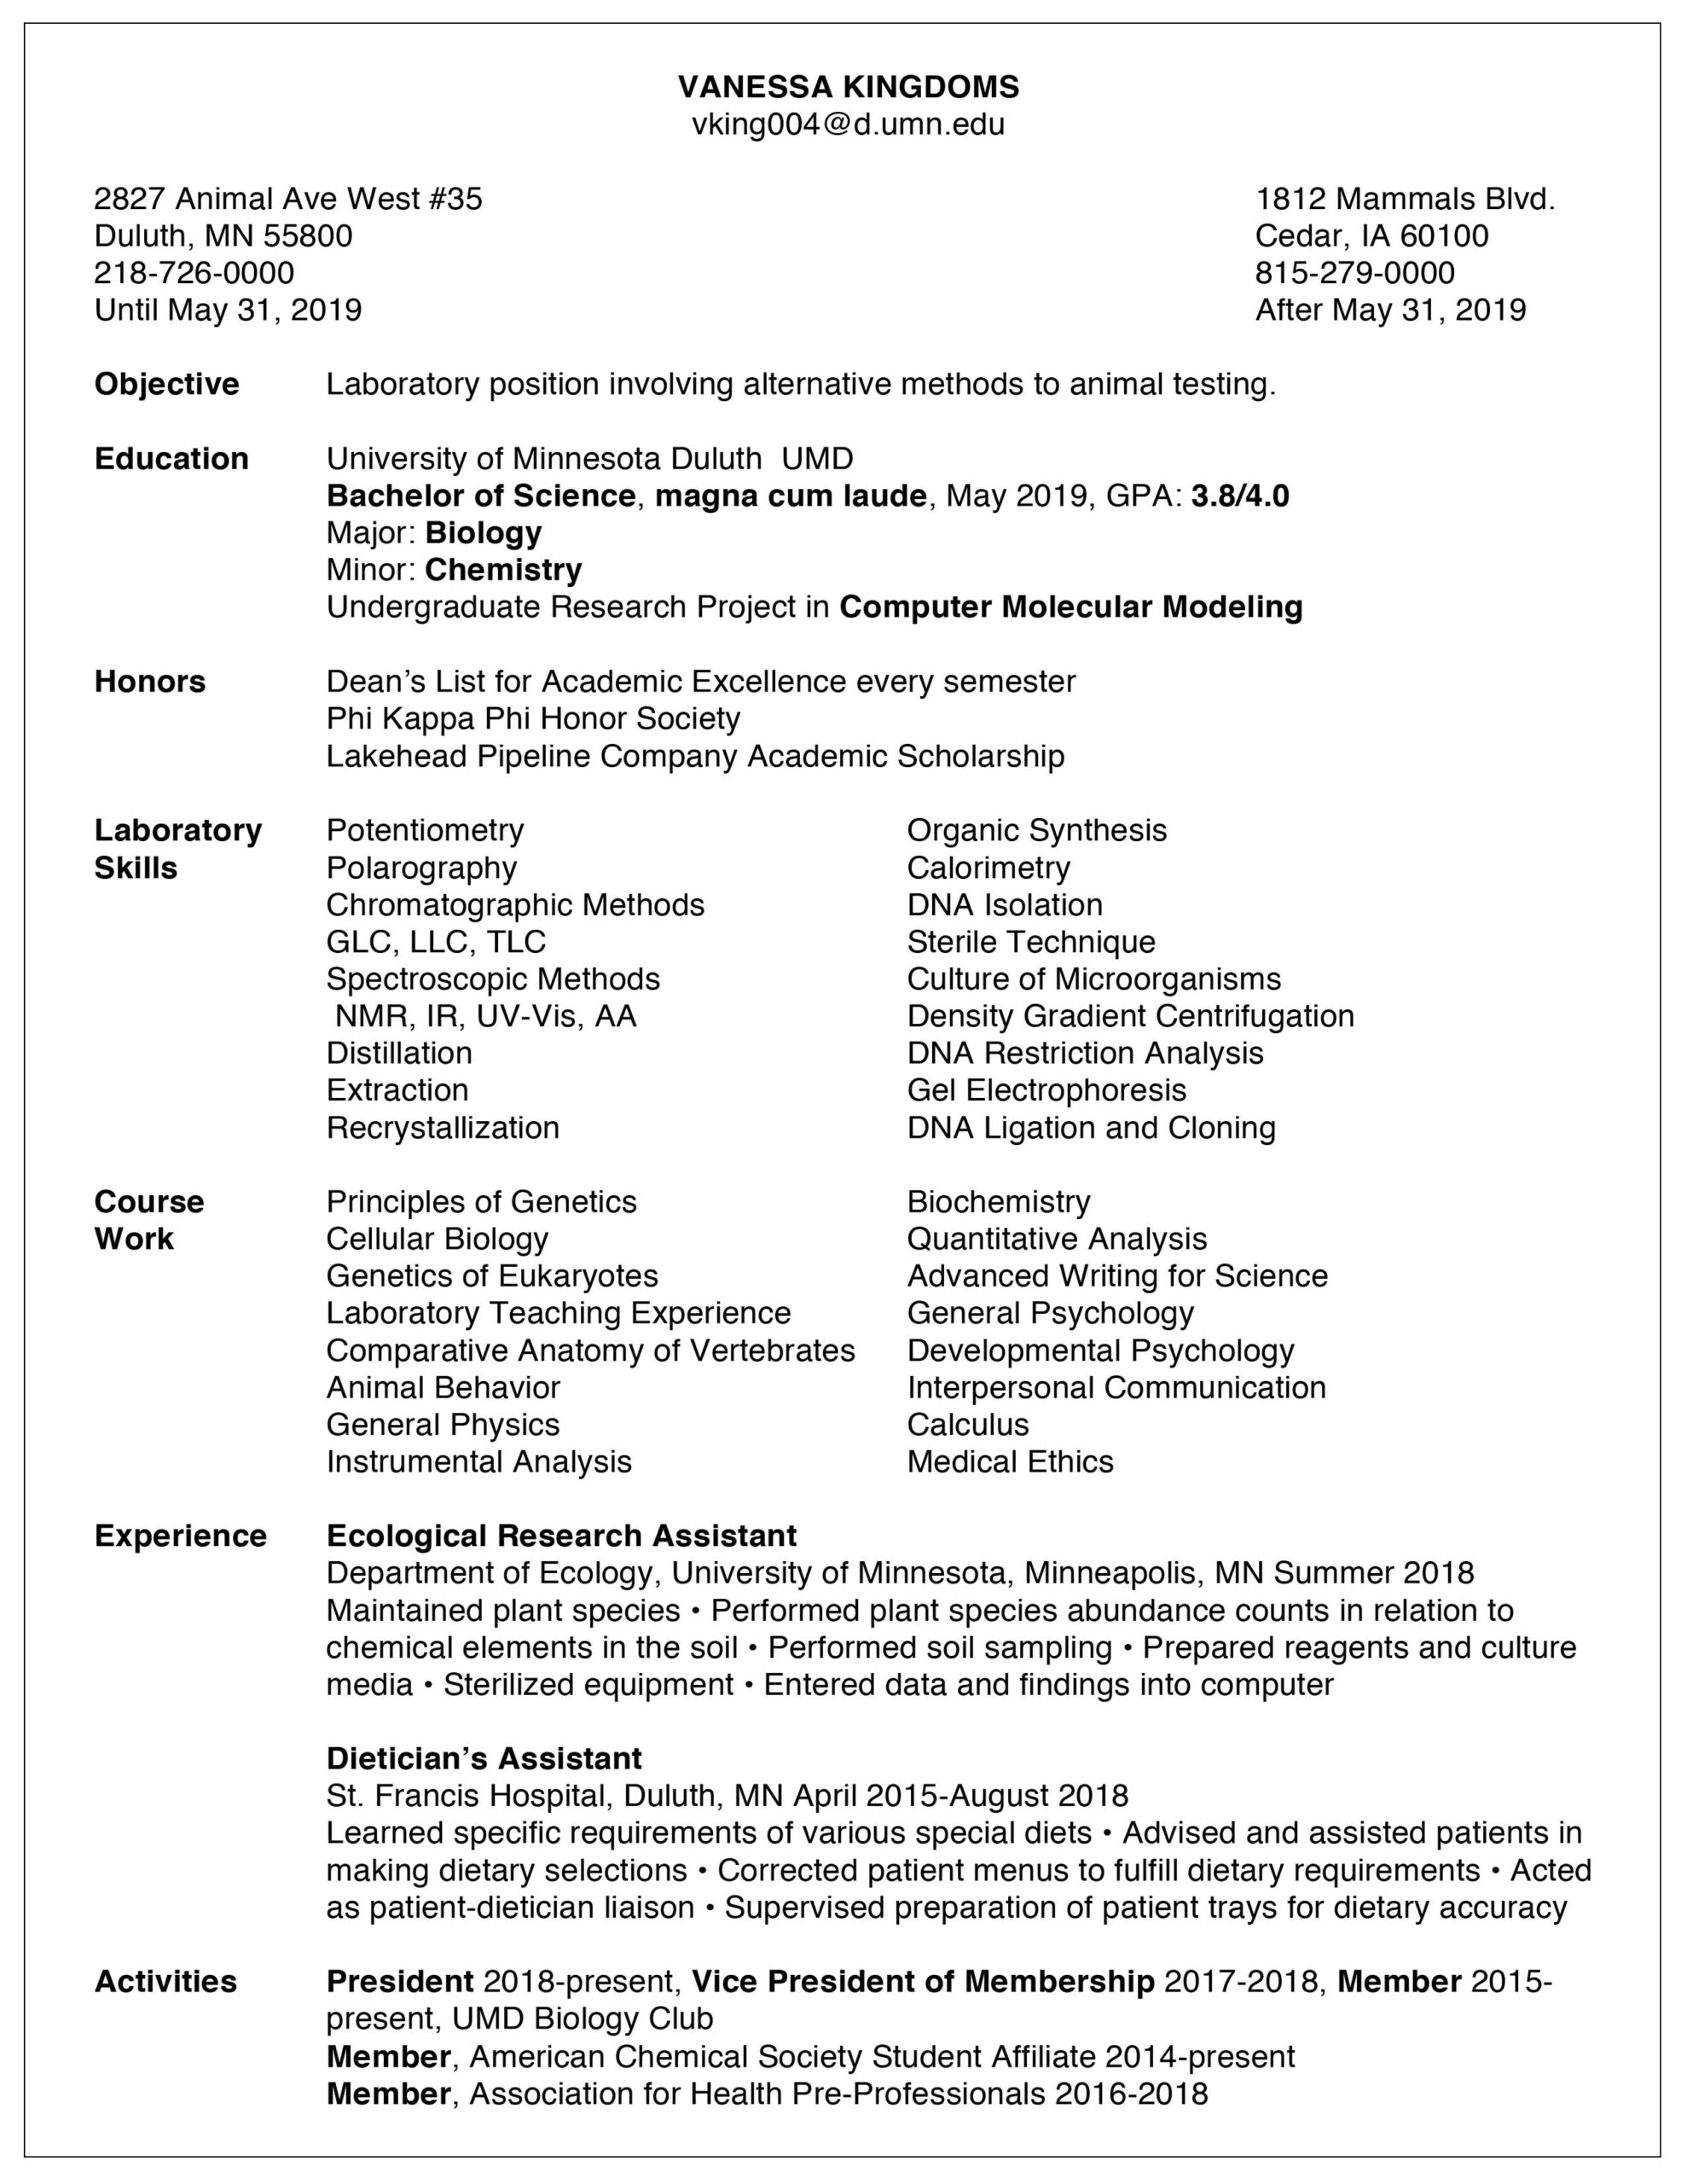 resume examples career internship services umn duluth requirements vanessa kingdoms Resume Resume Requirements 2019